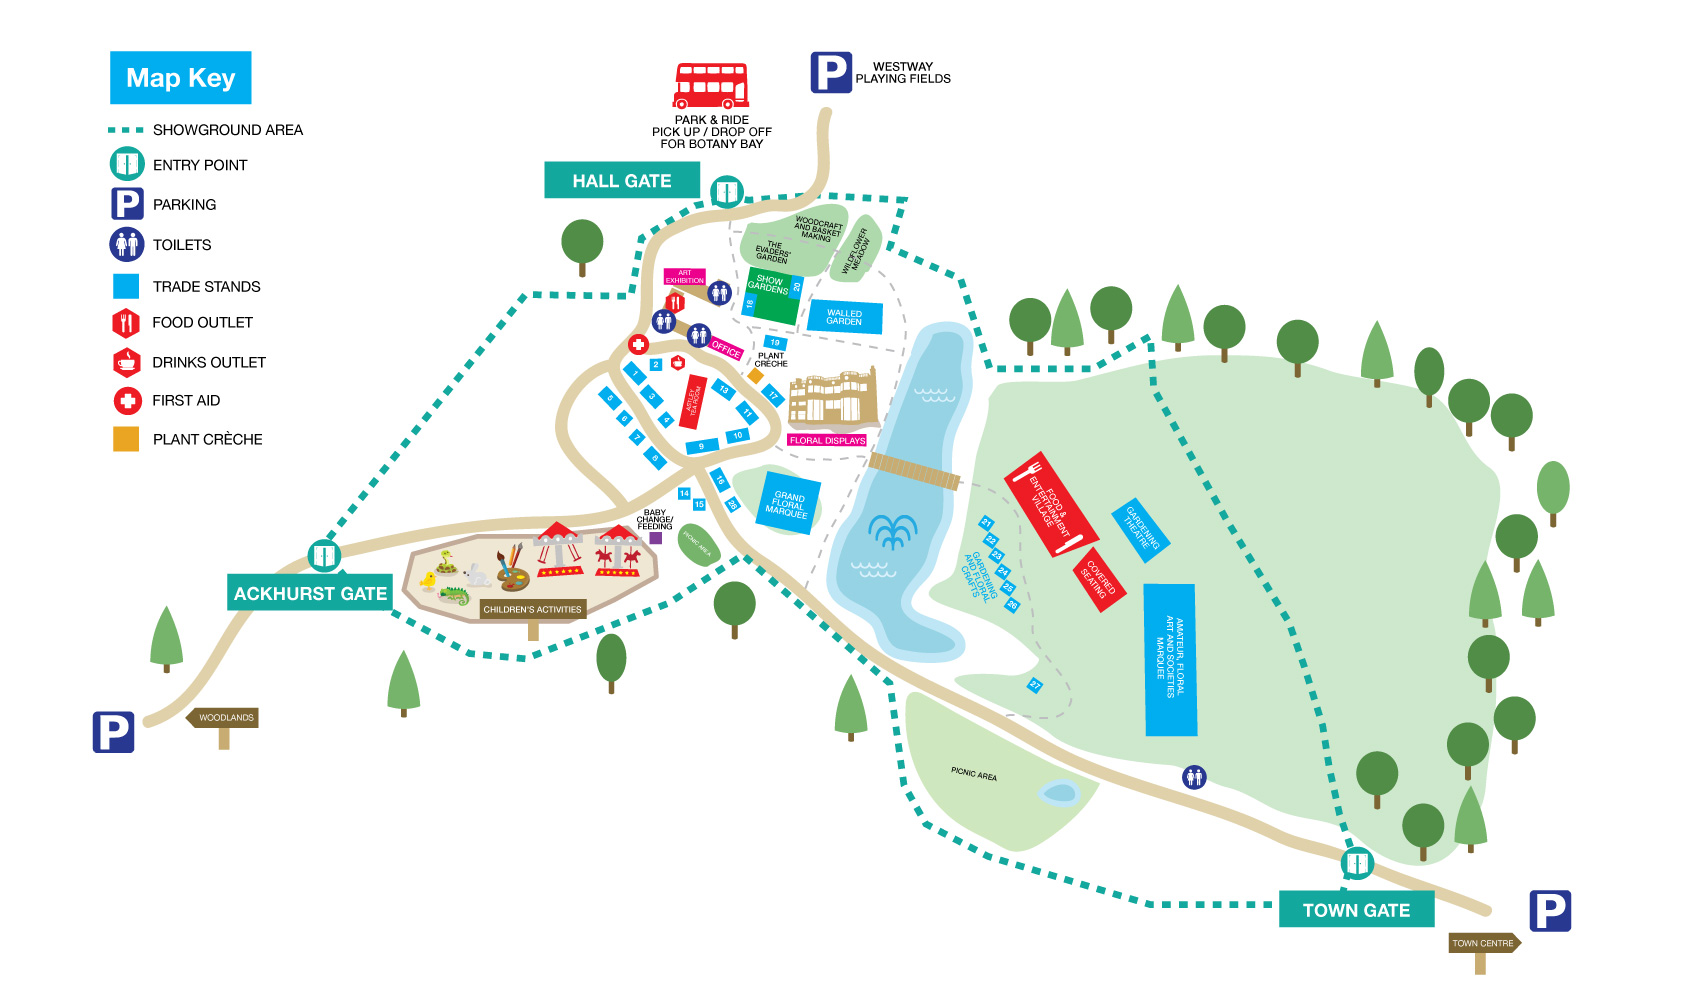 Chorley-Flower-show-2017-web-map